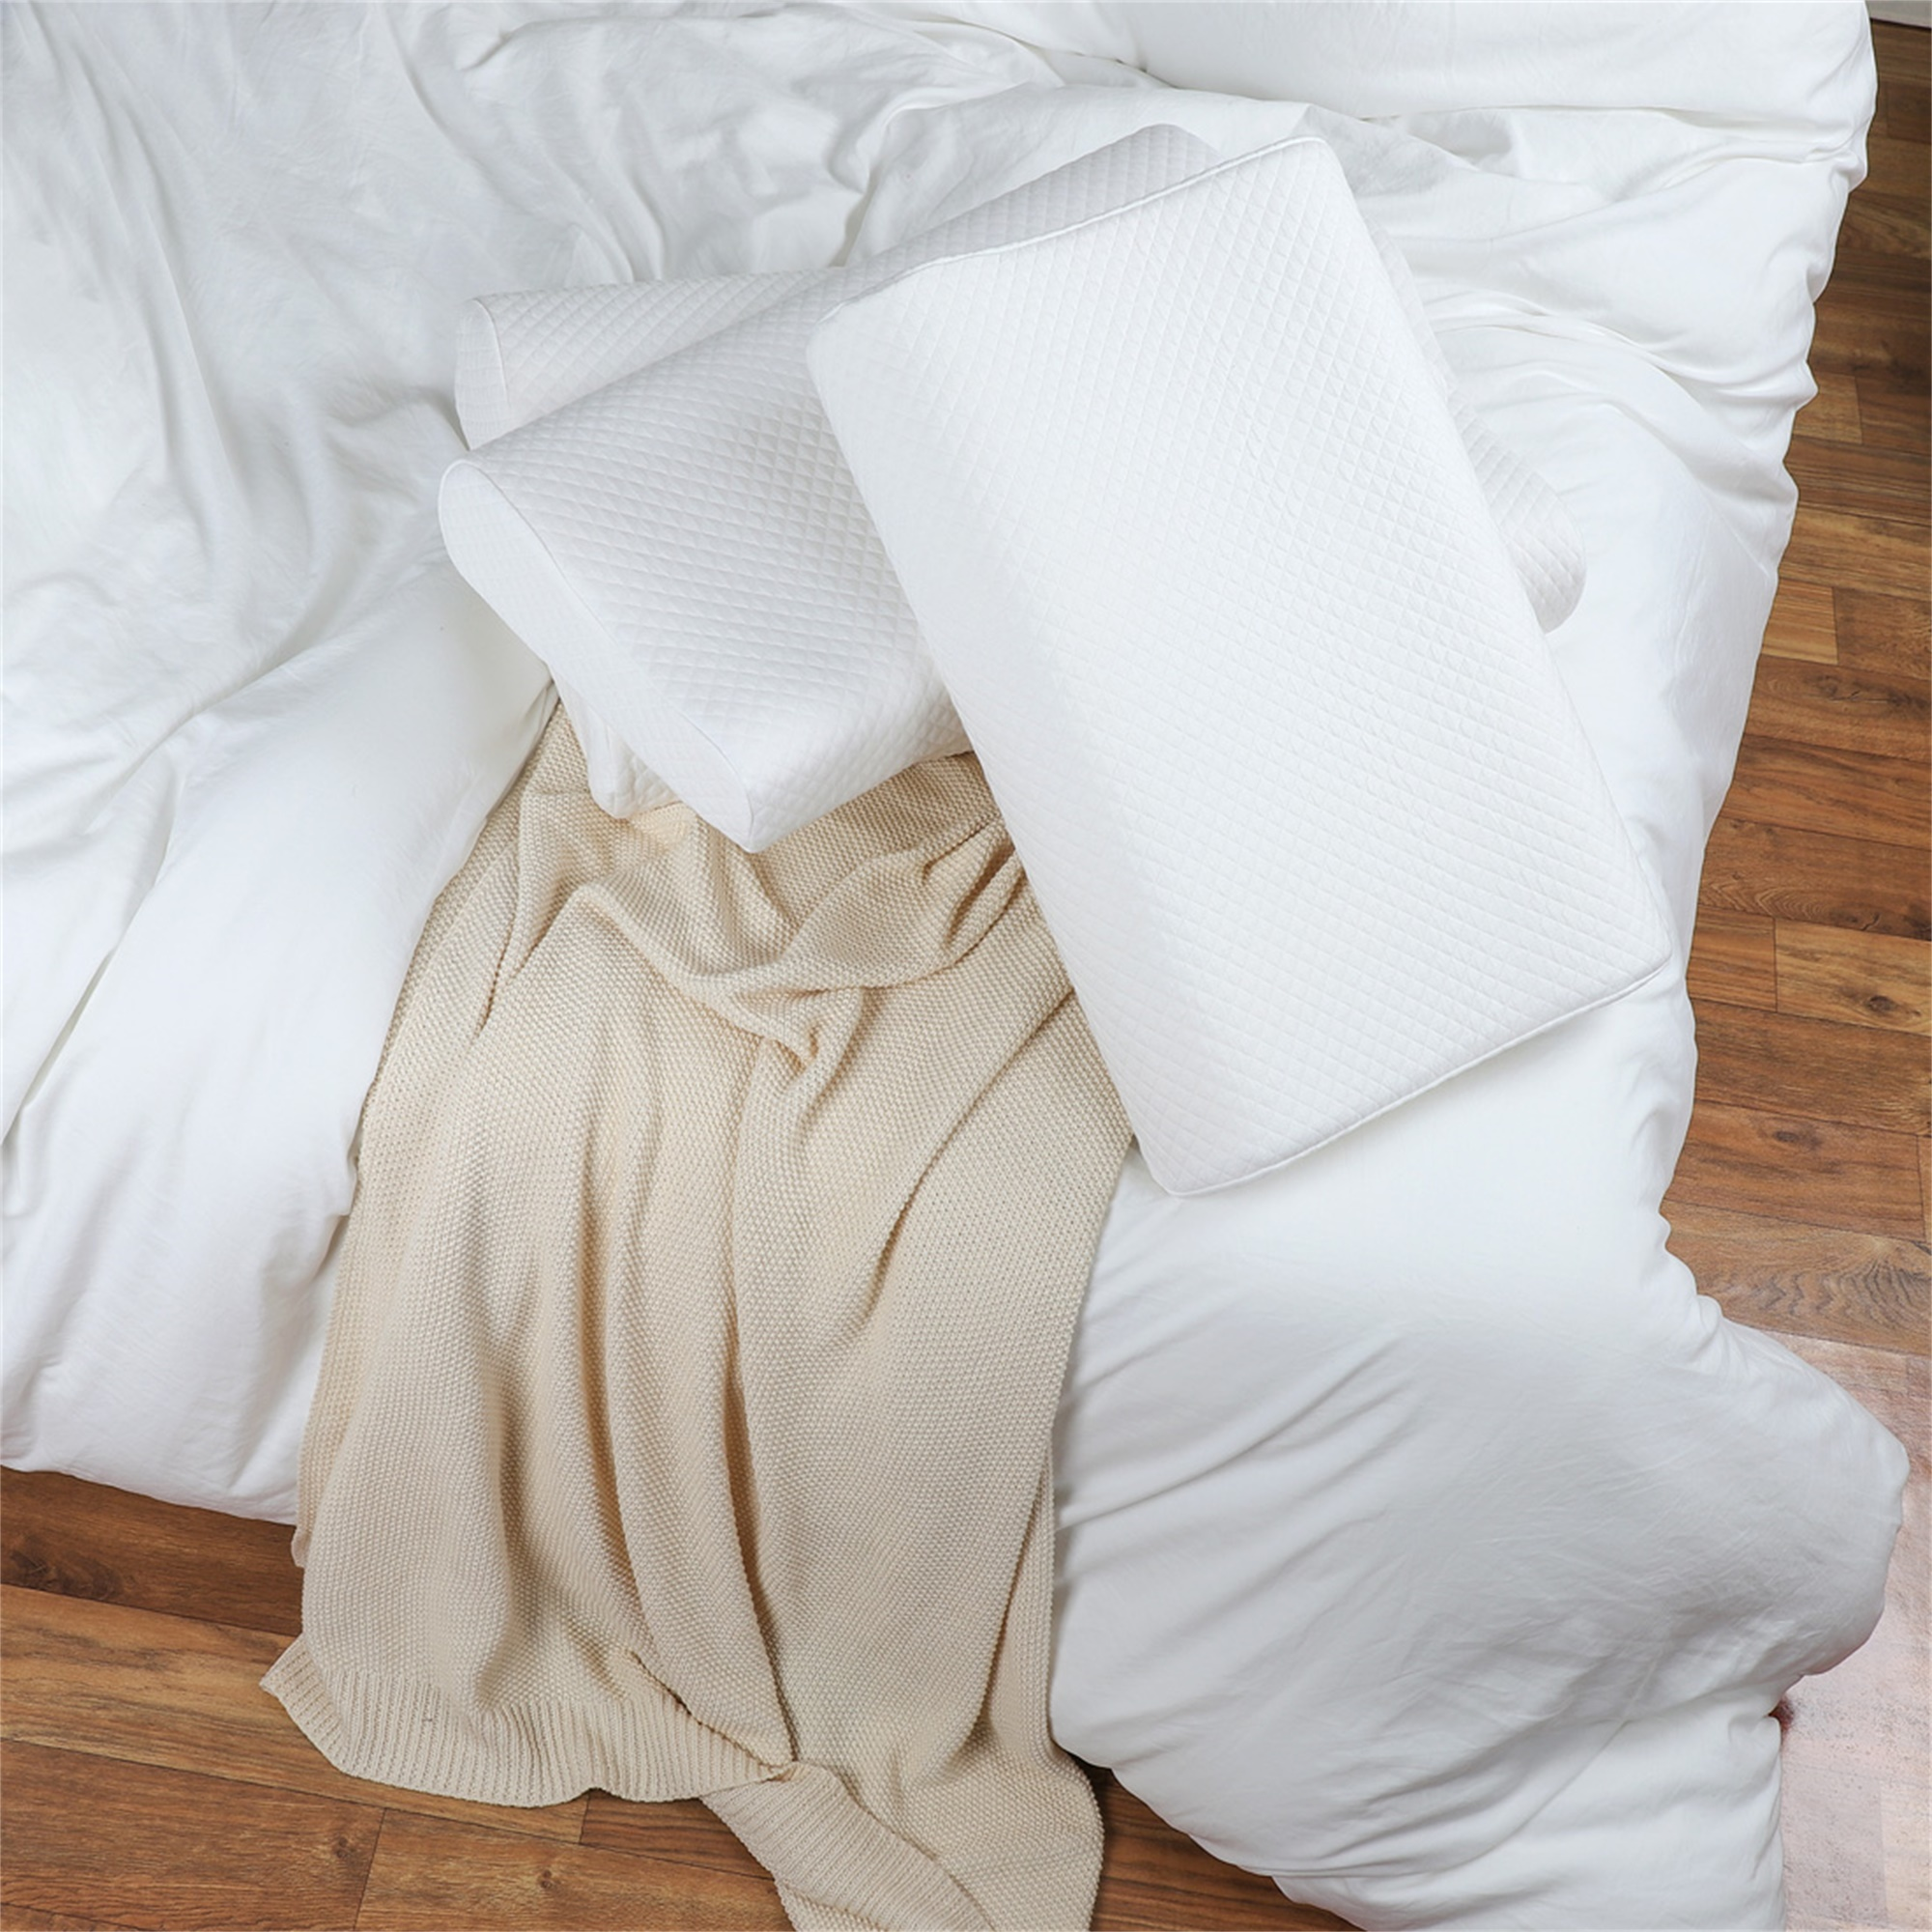 Contoured Memory Foam Pillow ! Standard Bed Pillow Available in 3 Sizes